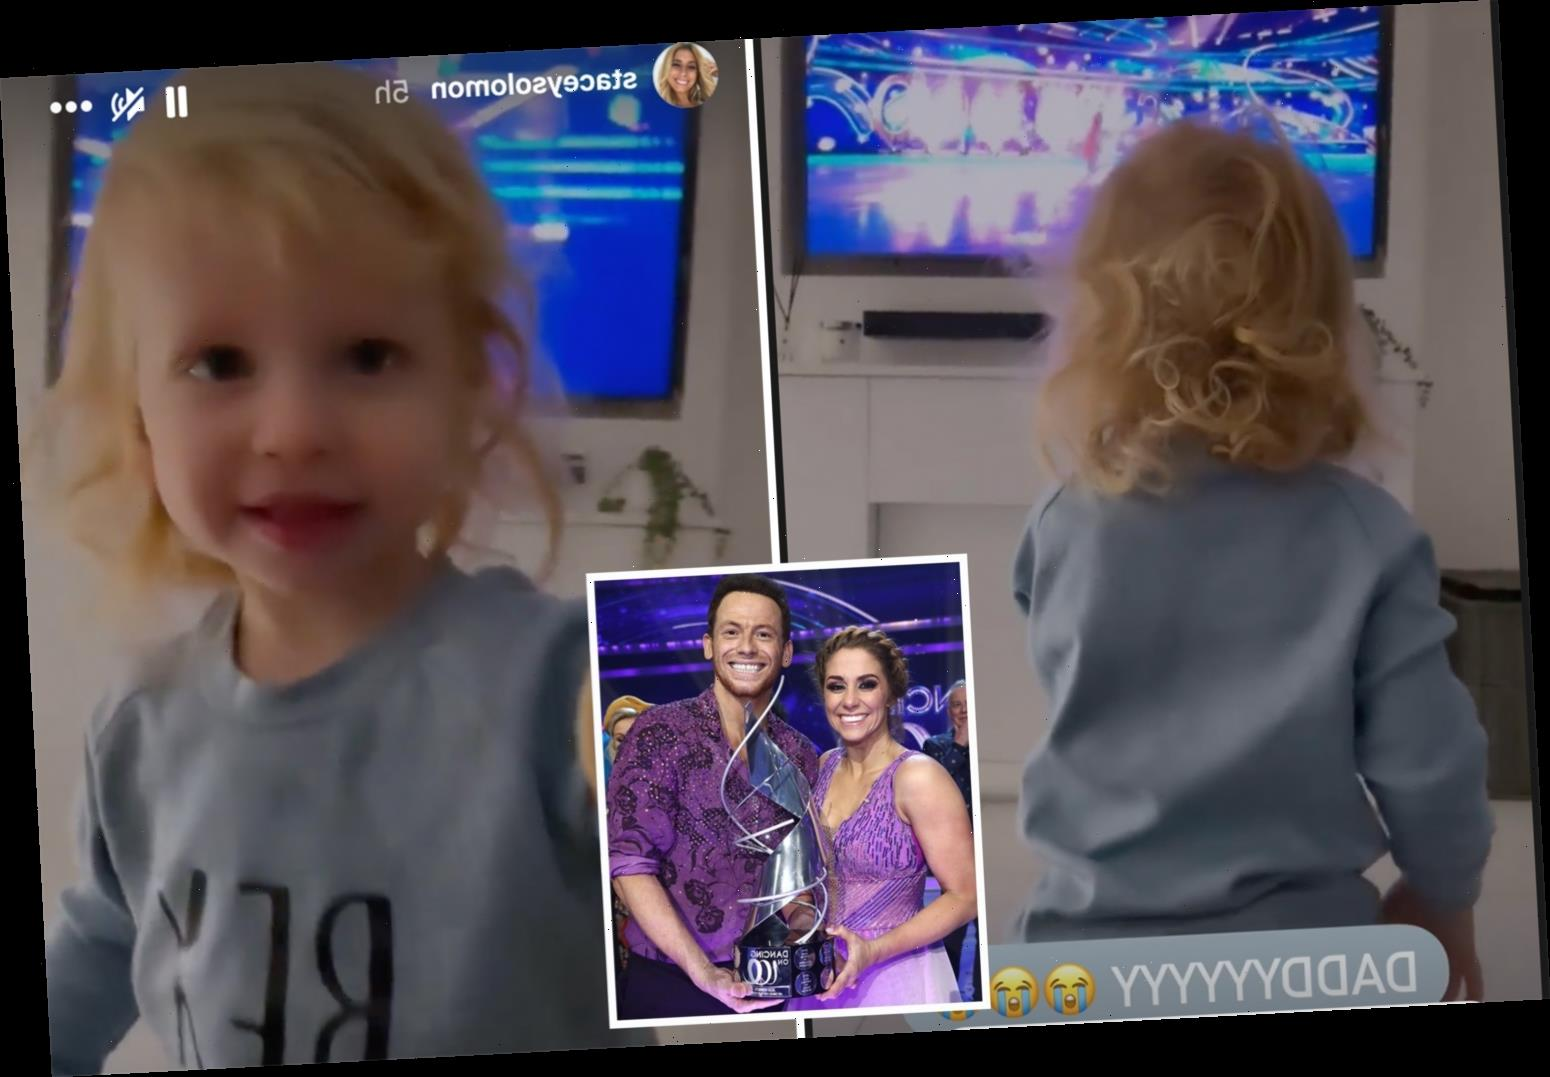 Stacey Solomon shares adorable video of son Rex screaming with excitement as he spots dad Joe Swash on Dancing On Ice